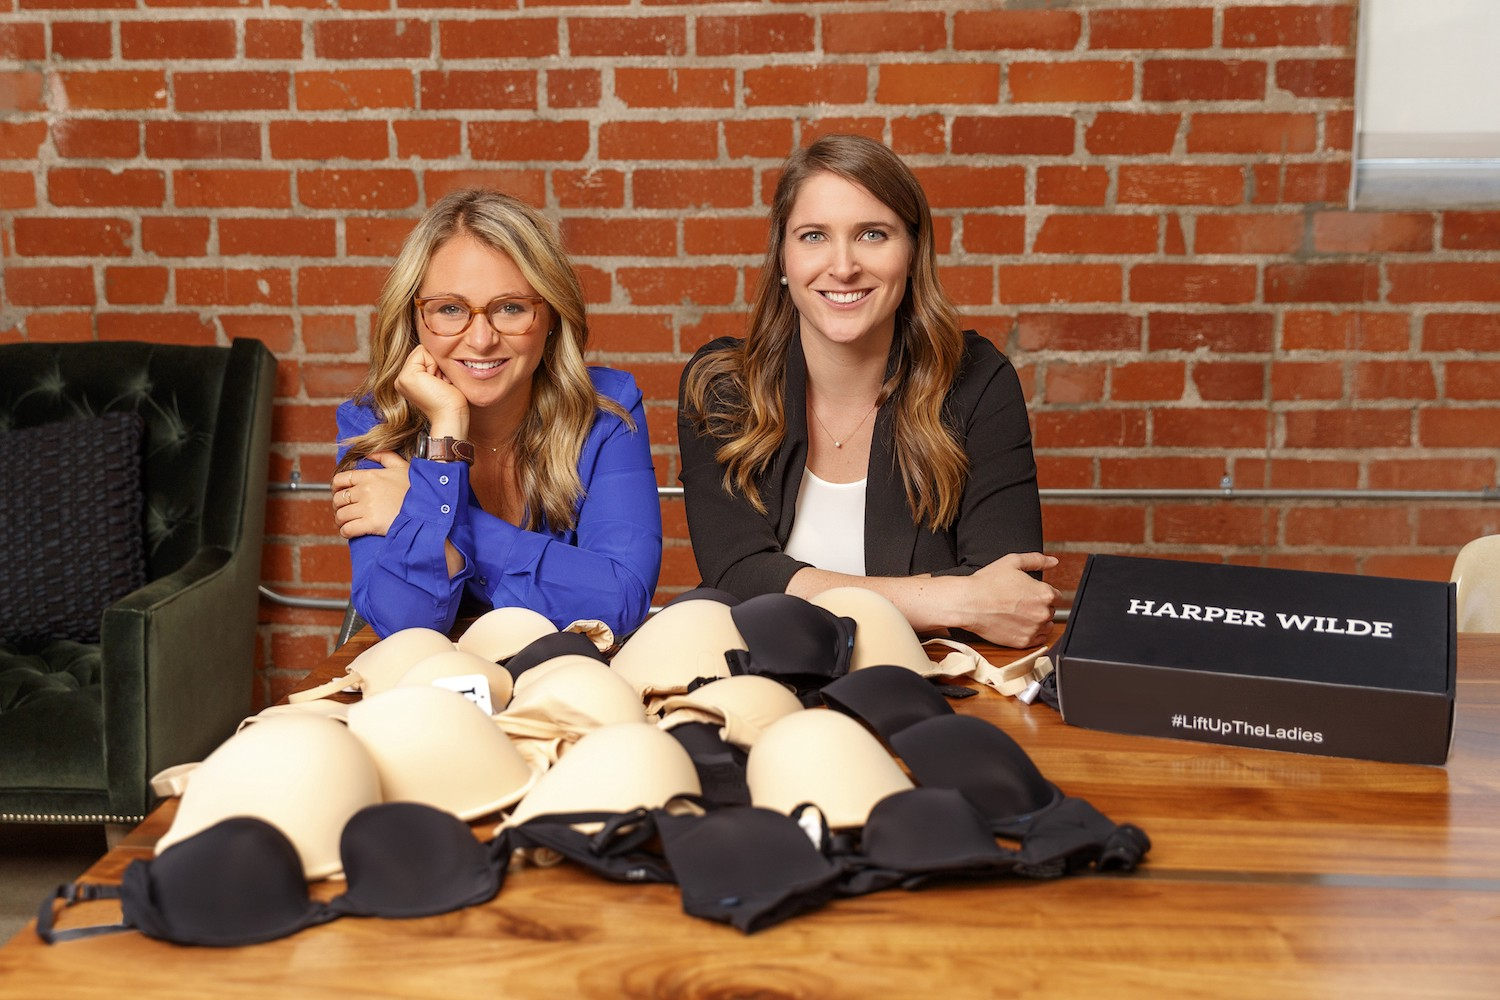 Jenna Kerner '11 poses with Harper Wilde co-CEO Jane Fisher.